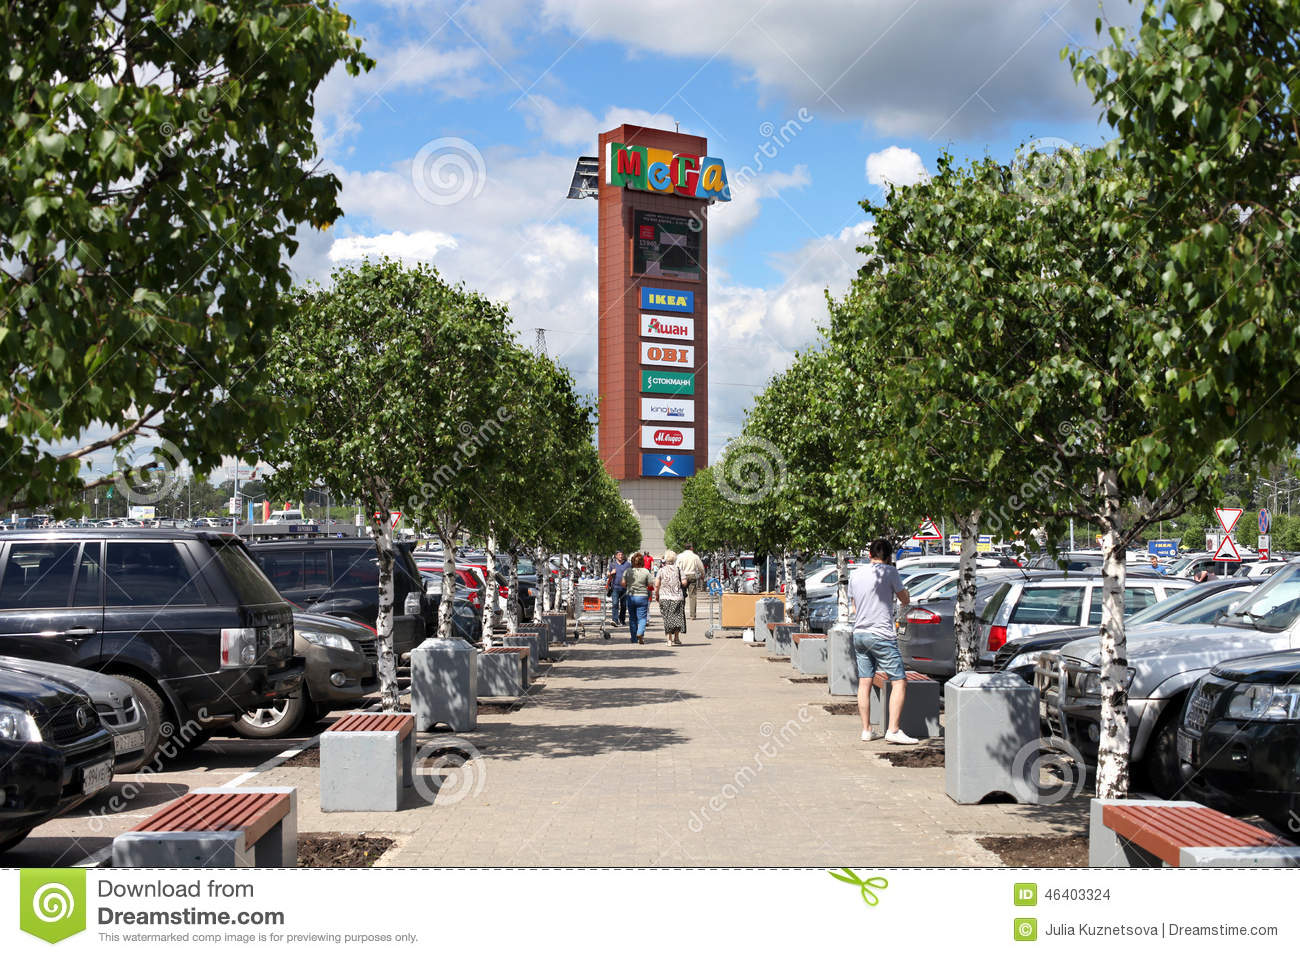 Ikea Russia The Advertising Tower With Logos Of Ikea, Auchan, Obi And